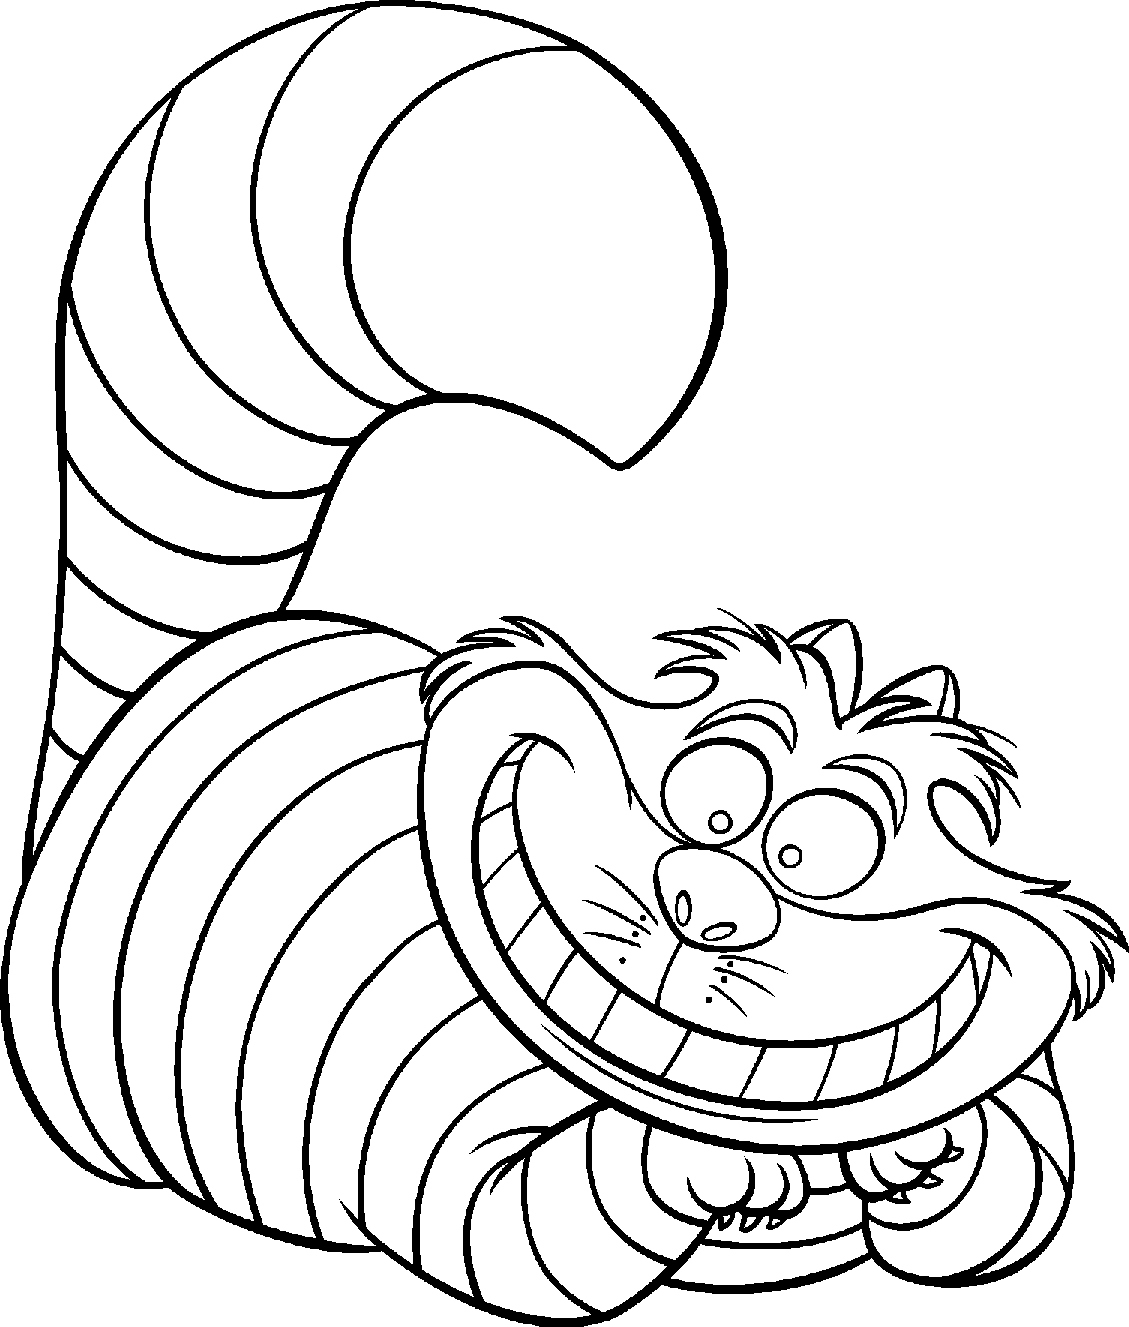 Disney Coloring Pages Free Cheshire Cat Coloring Pages Free Disney Adult Coloring Pages